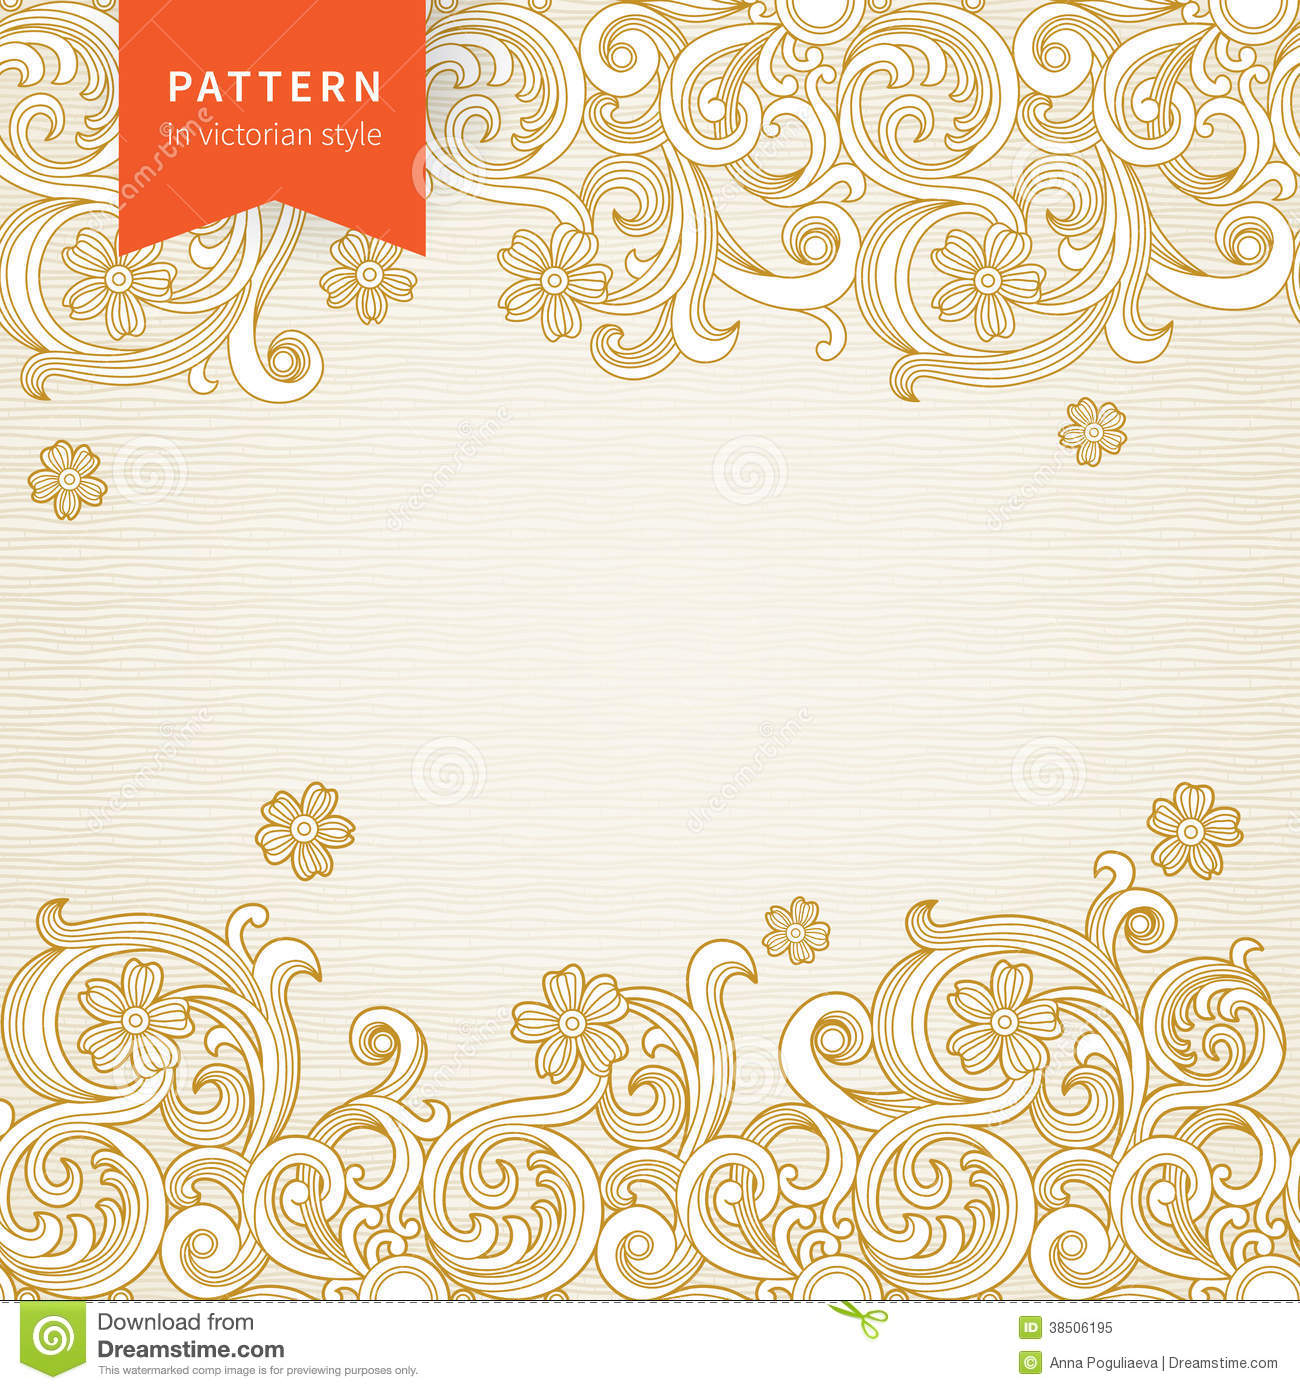 Vector Ornate Floral Pattern In Victorian Style Stock